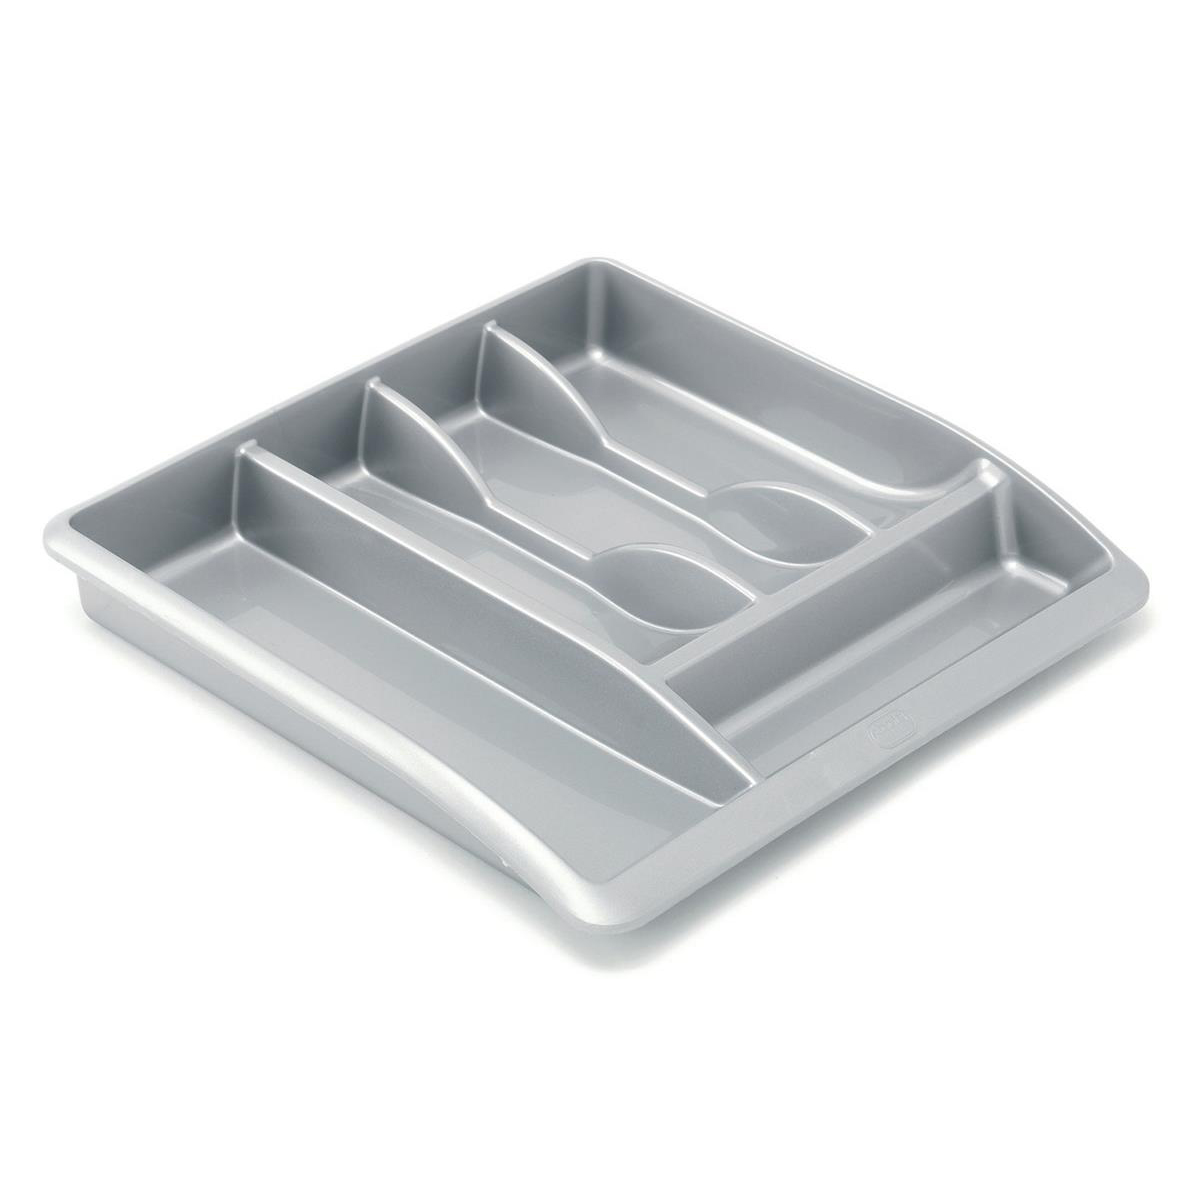 Washing Up Bowls / Brushes / Drainers Addis Drawer Organiser High Gloss Plastic Metallic Silver Ref 510855